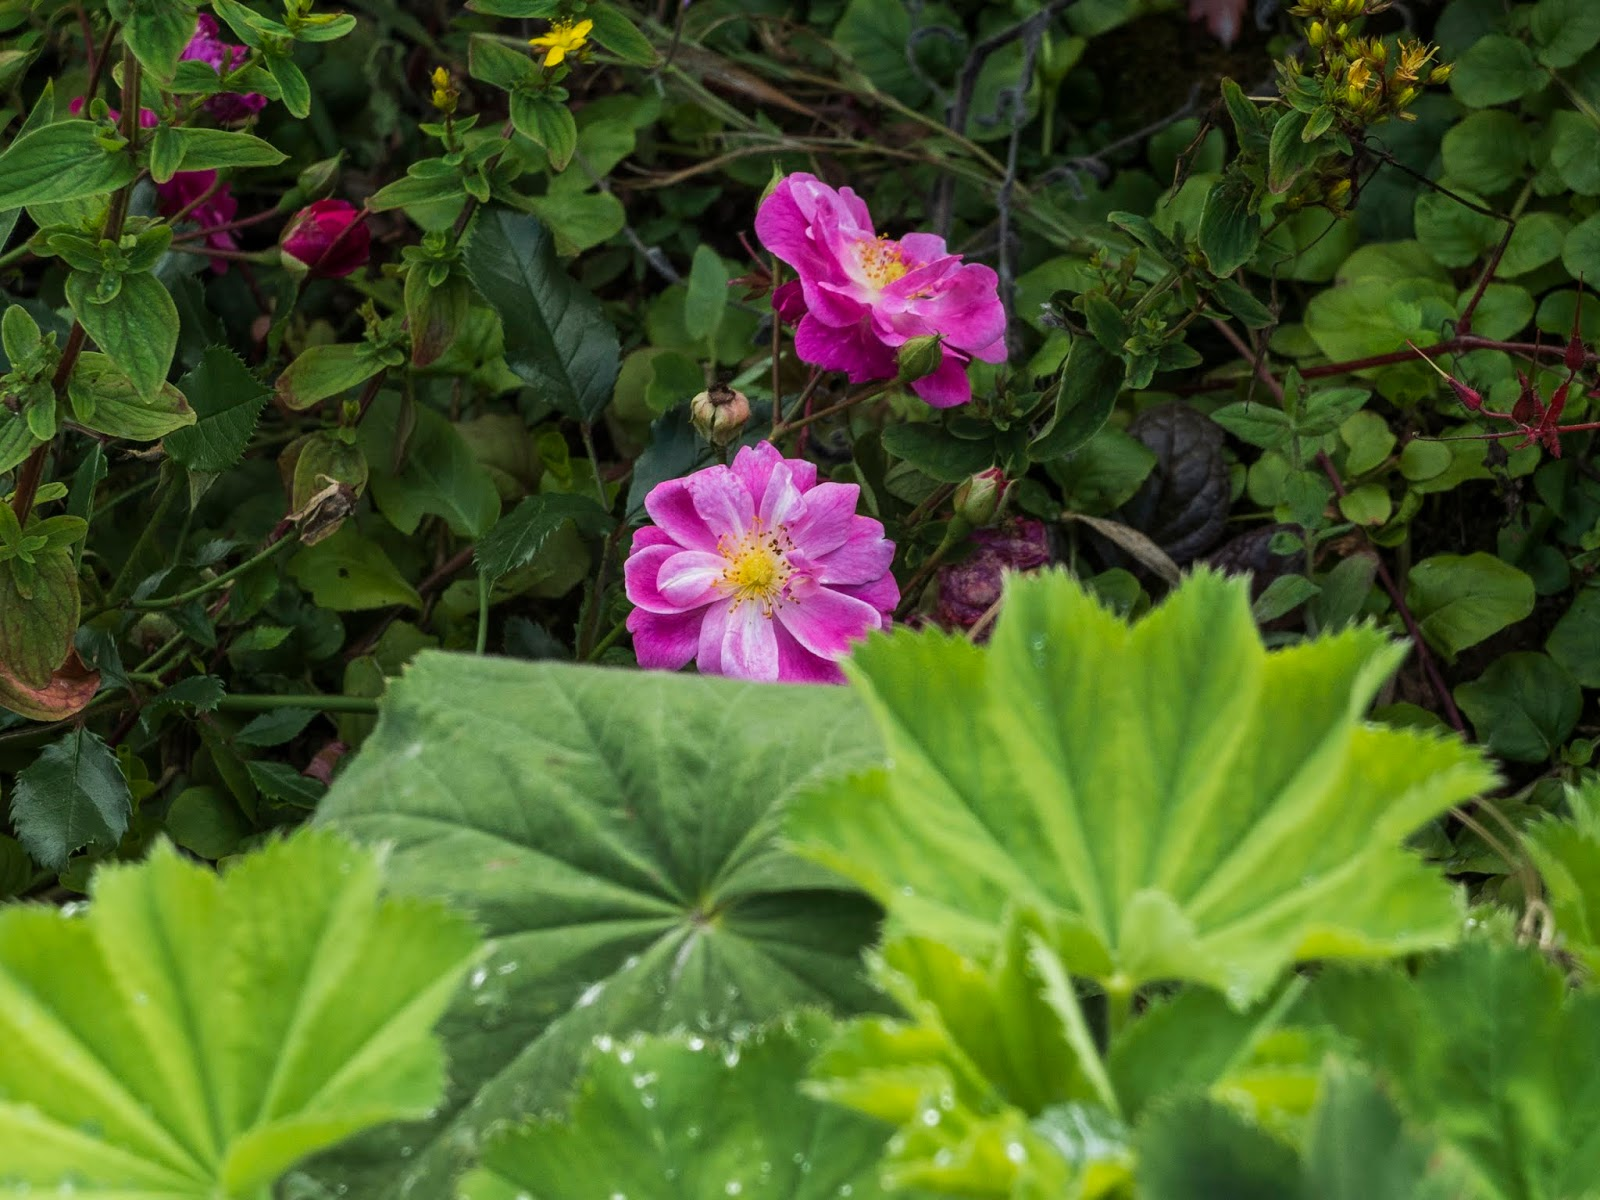 Two pink roses among green leaves.